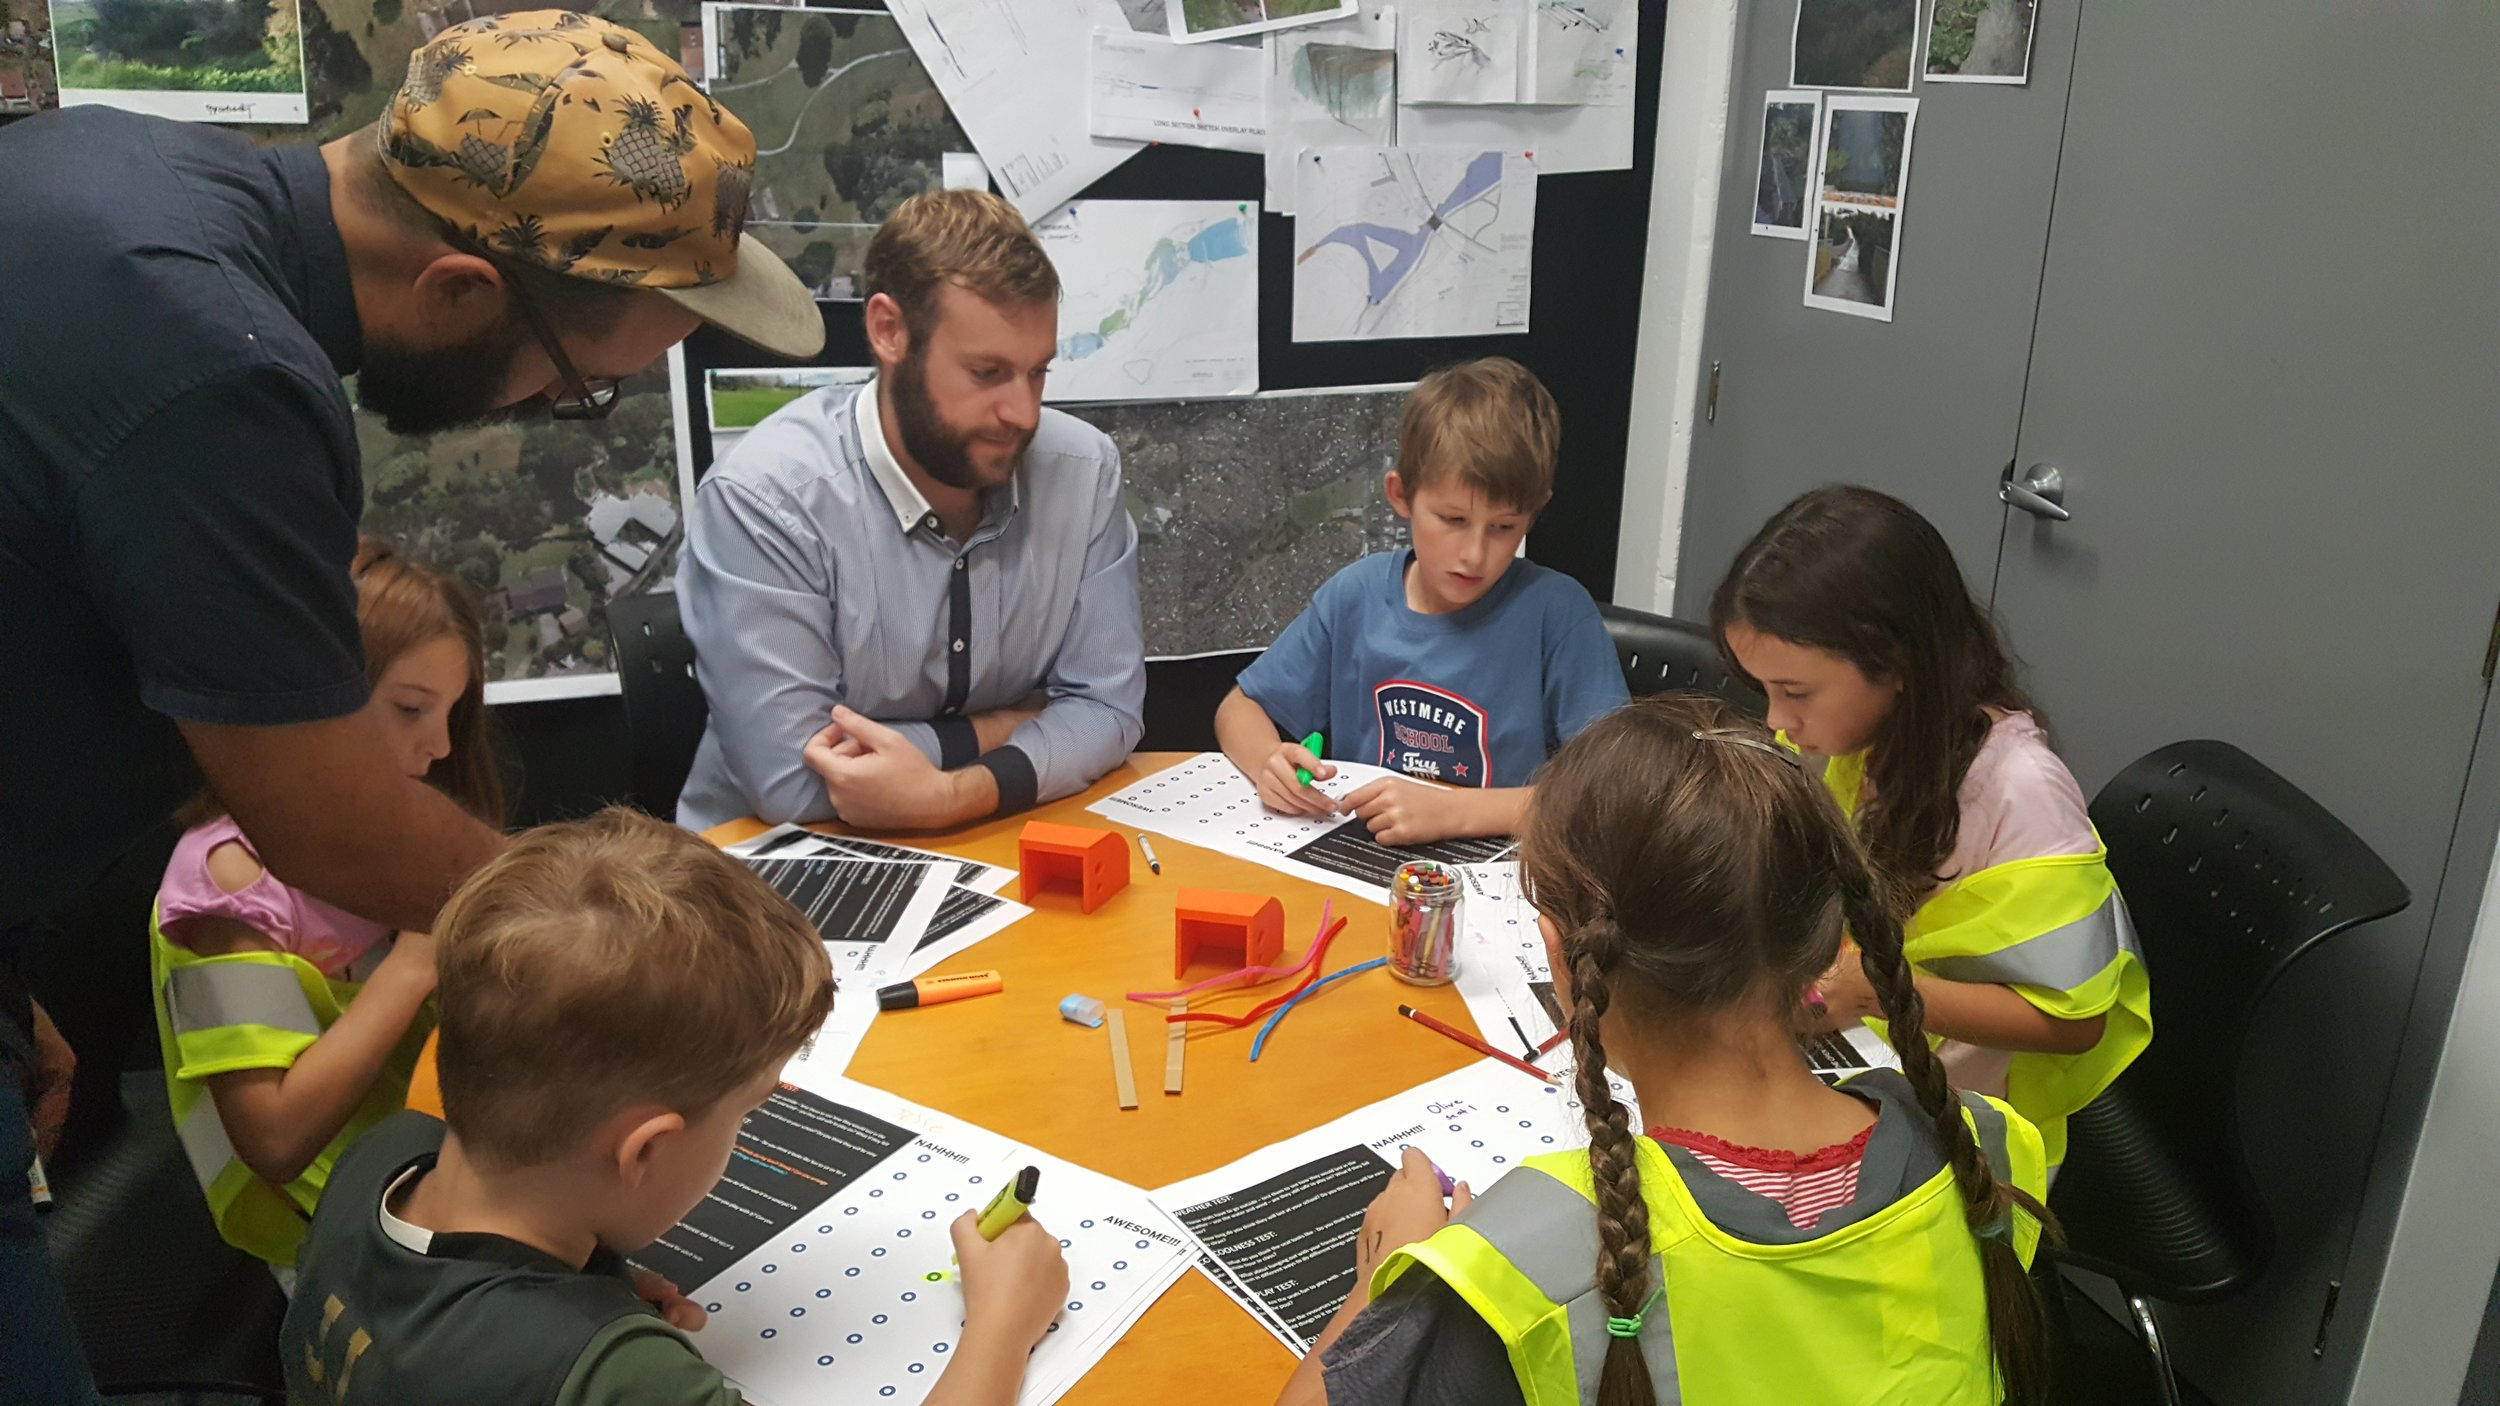 Damian Powley (left) working on design with a group of children.